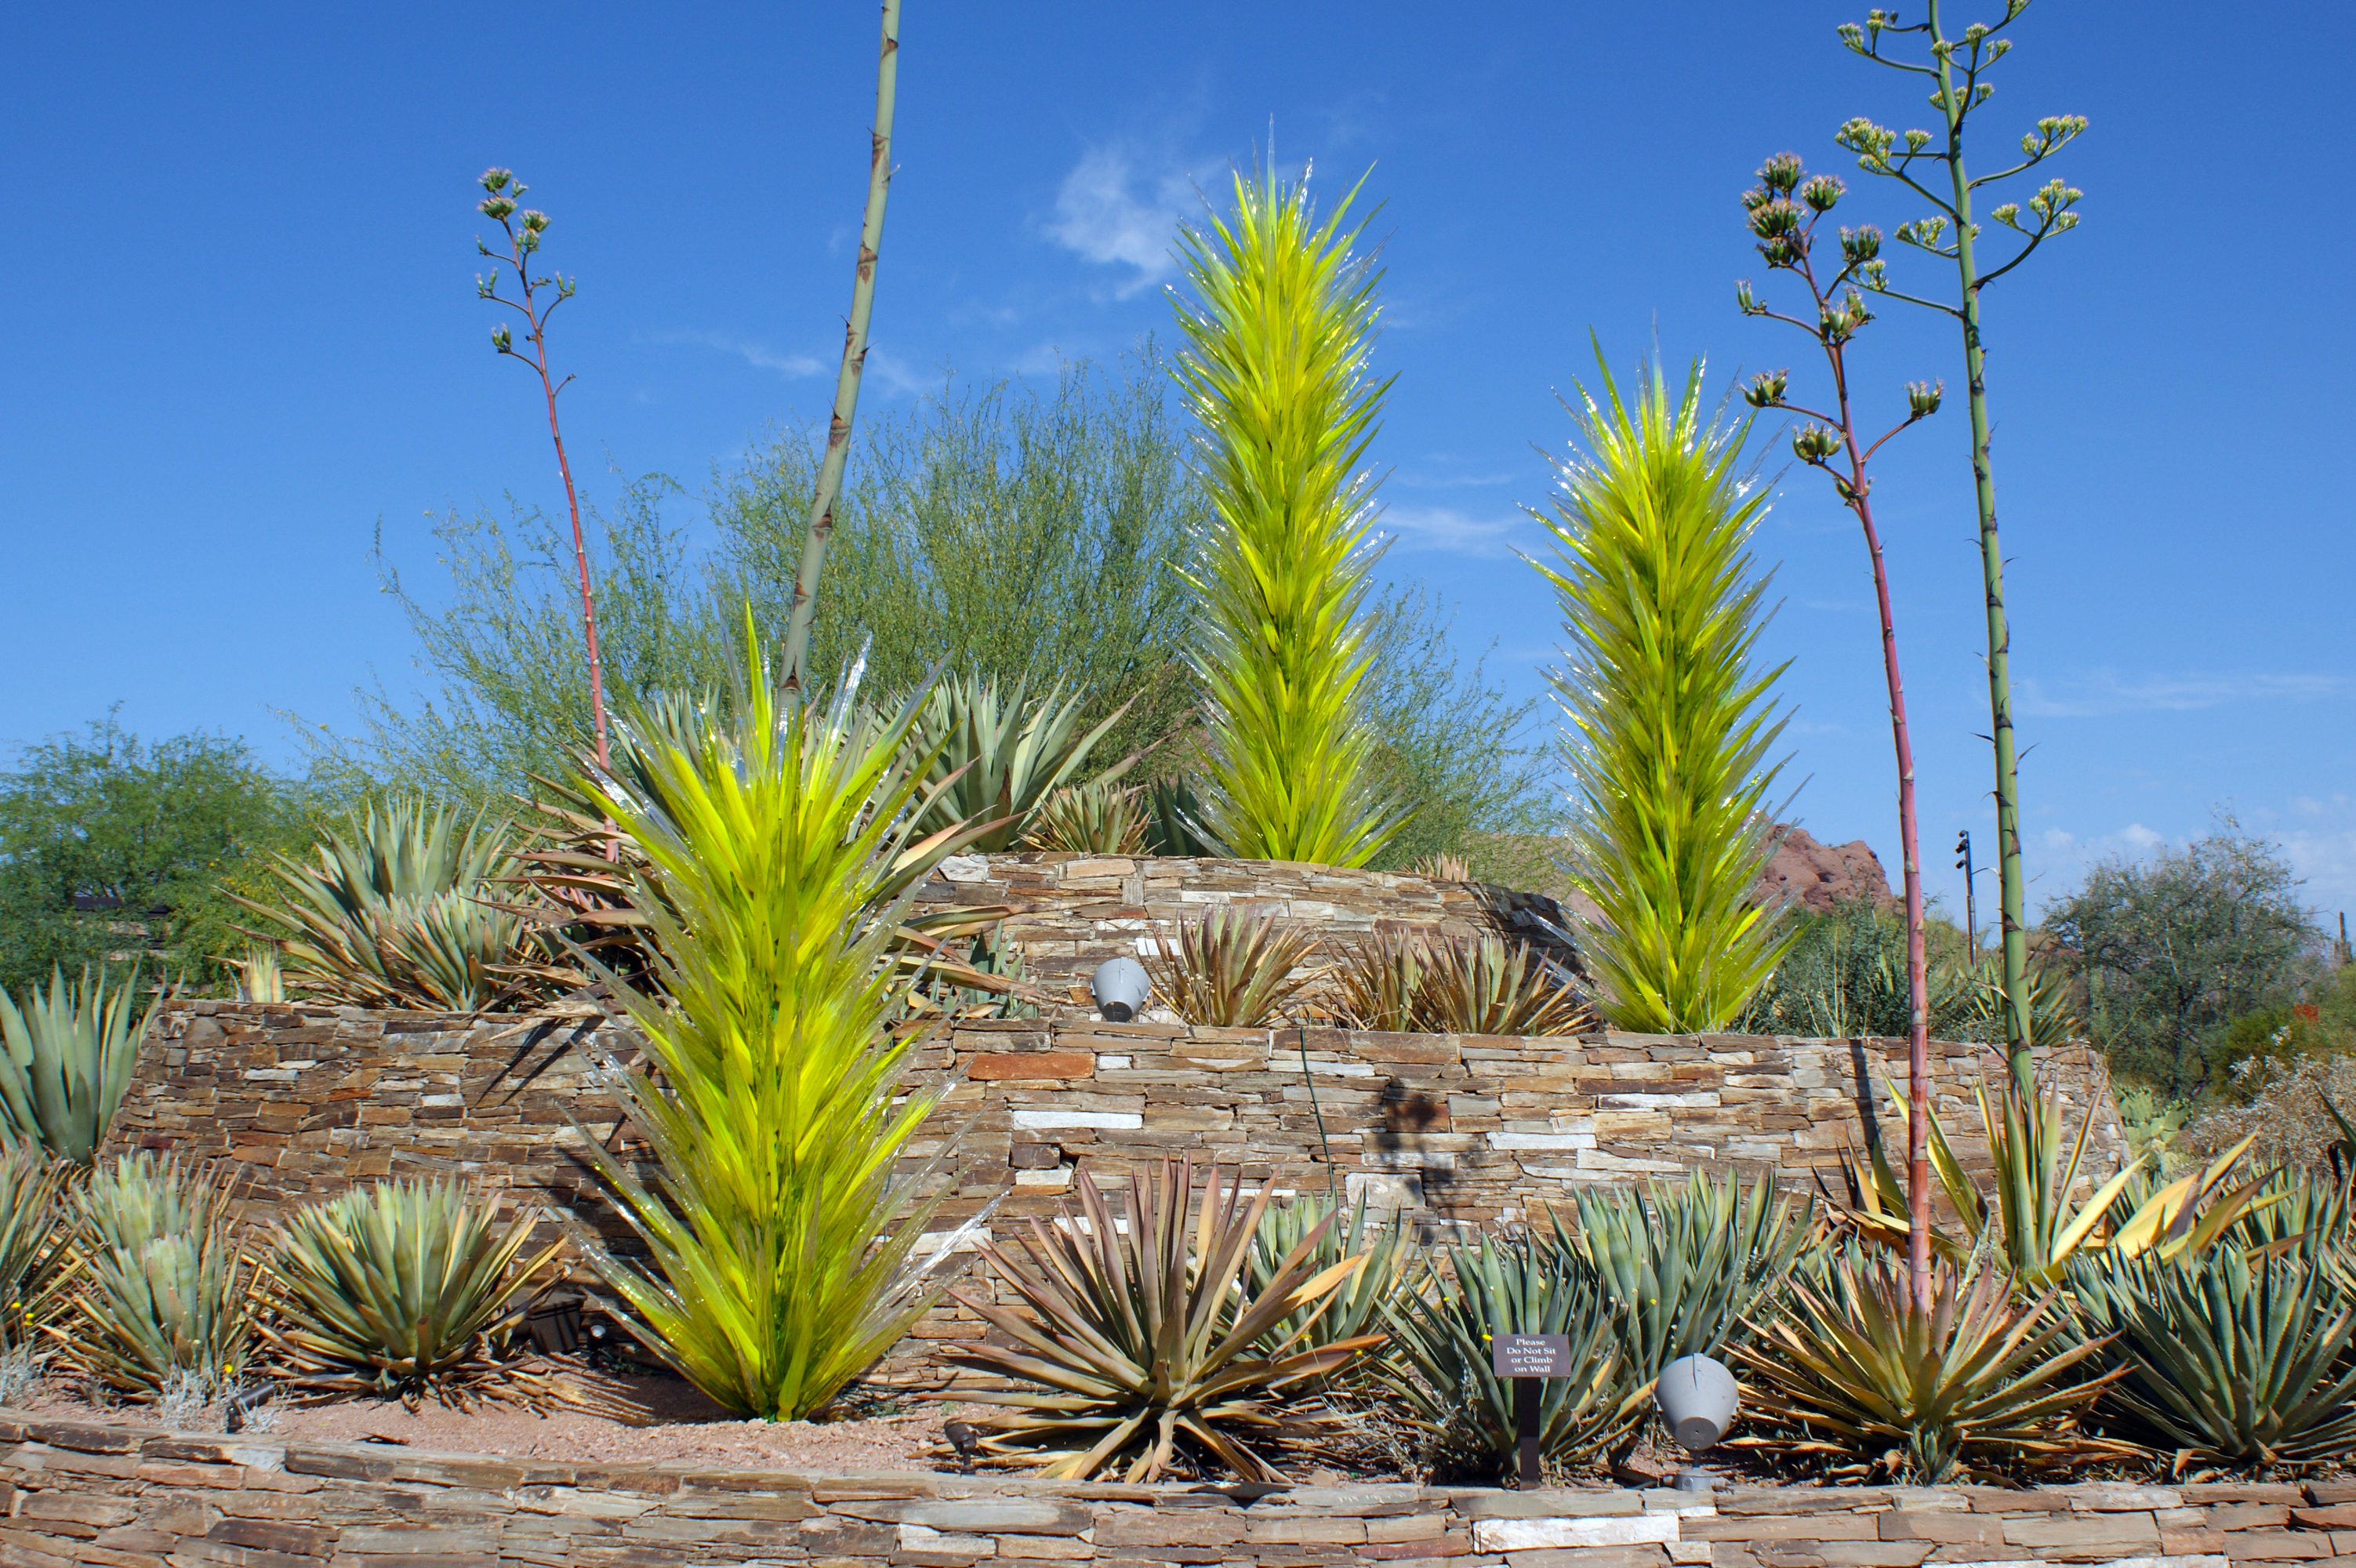 Desert botanical garden - Chihuly At The Dbg